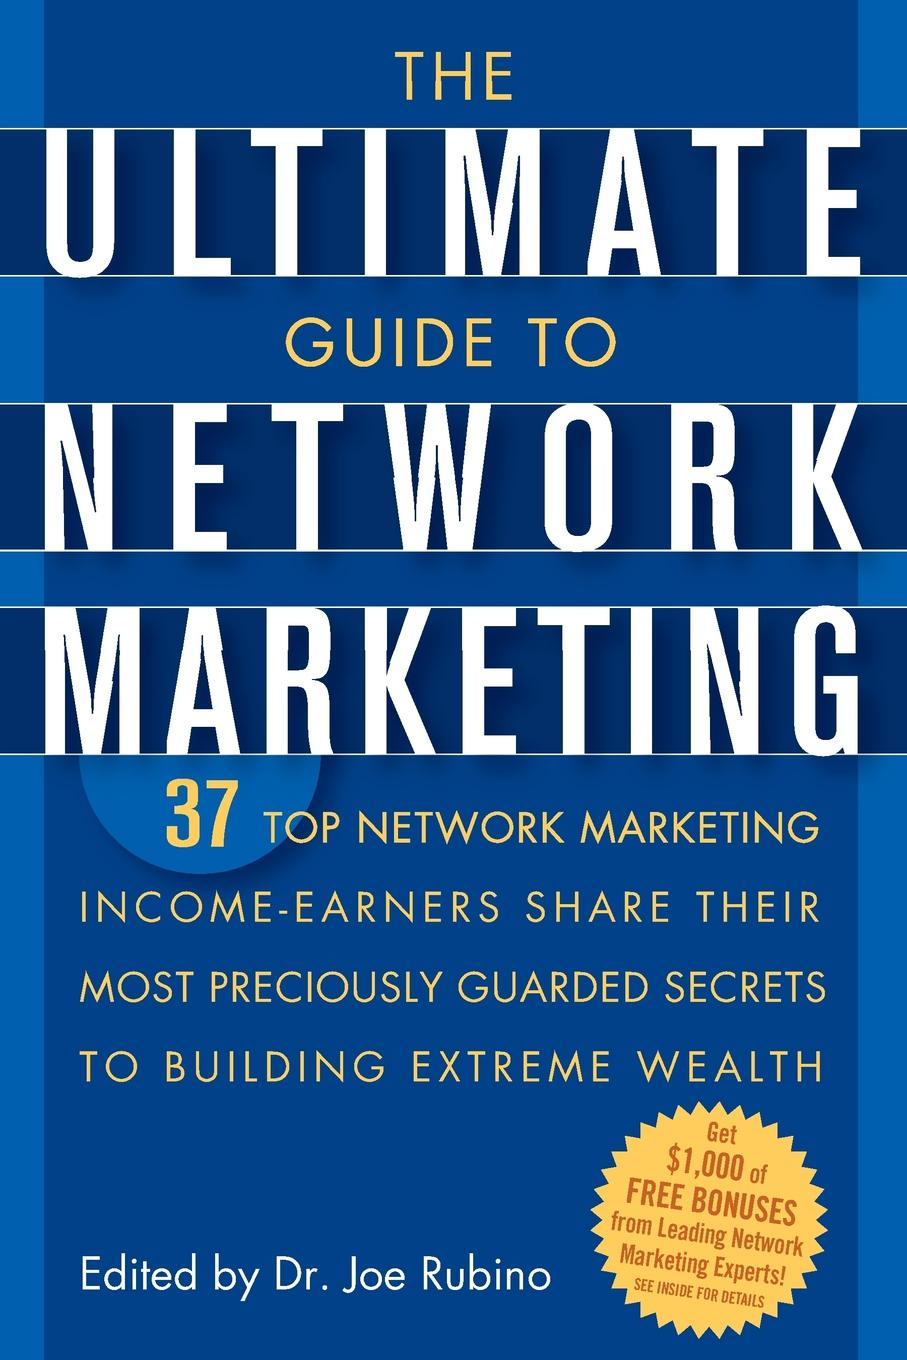 The Ultimate Guide to Network Marketing. 37 Top Network Marketing Income-Earners Share Their Most Preciously Guarded Secrets to Building Extreme Wealt gunnar schuster network marketing enrichment or deception